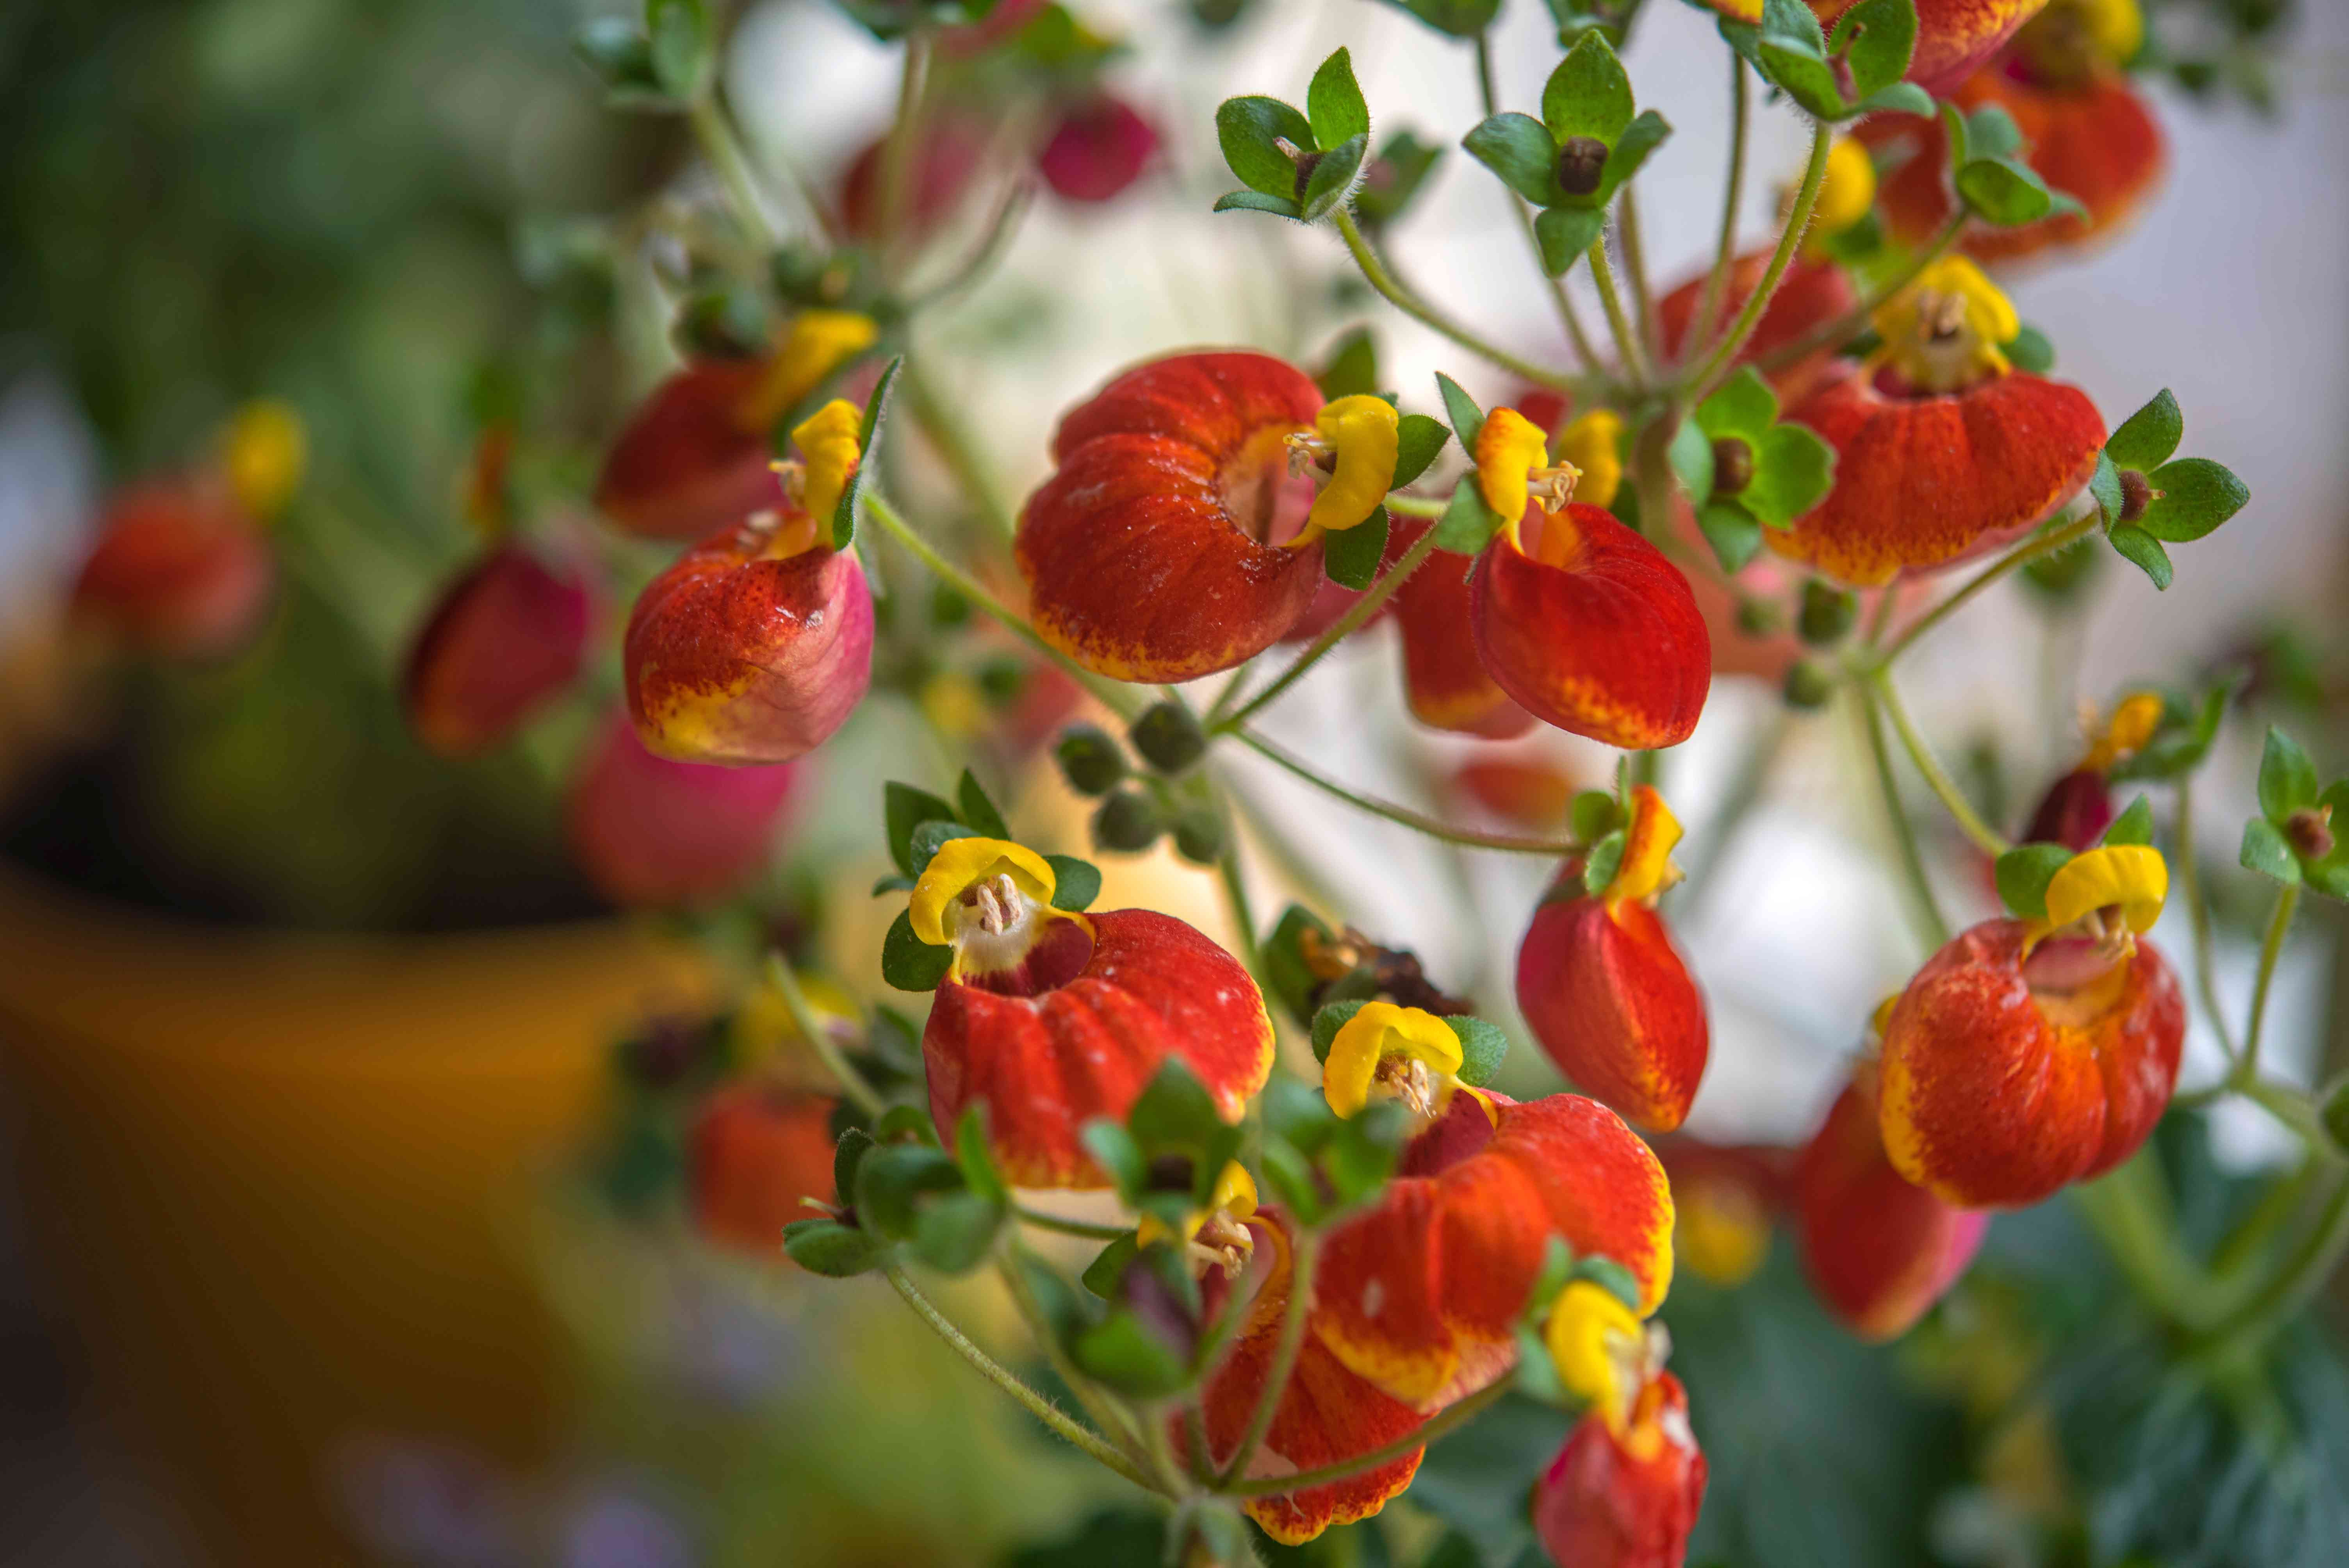 Calceolaria houseplant vines with red and yellow slipper-like flowers and buds closeup